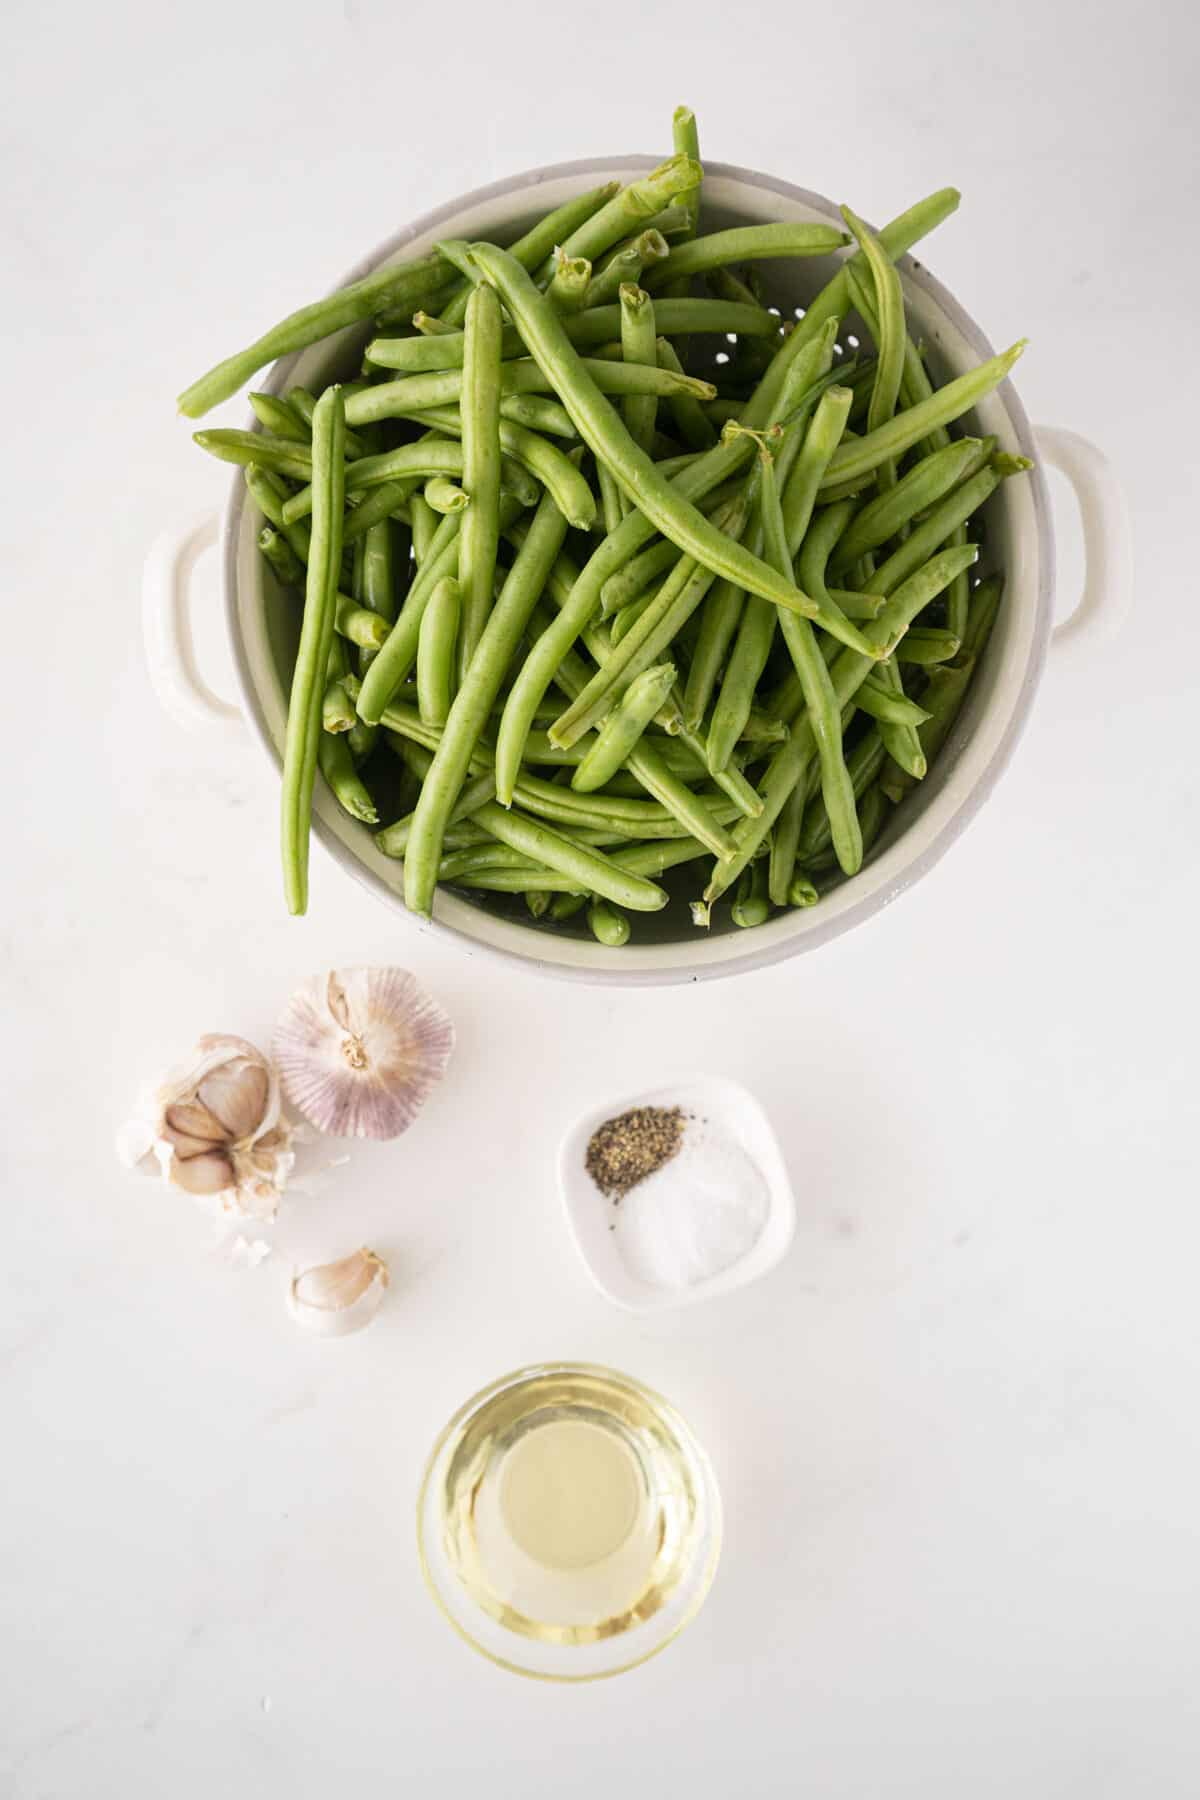 ingredients for roasted green beans